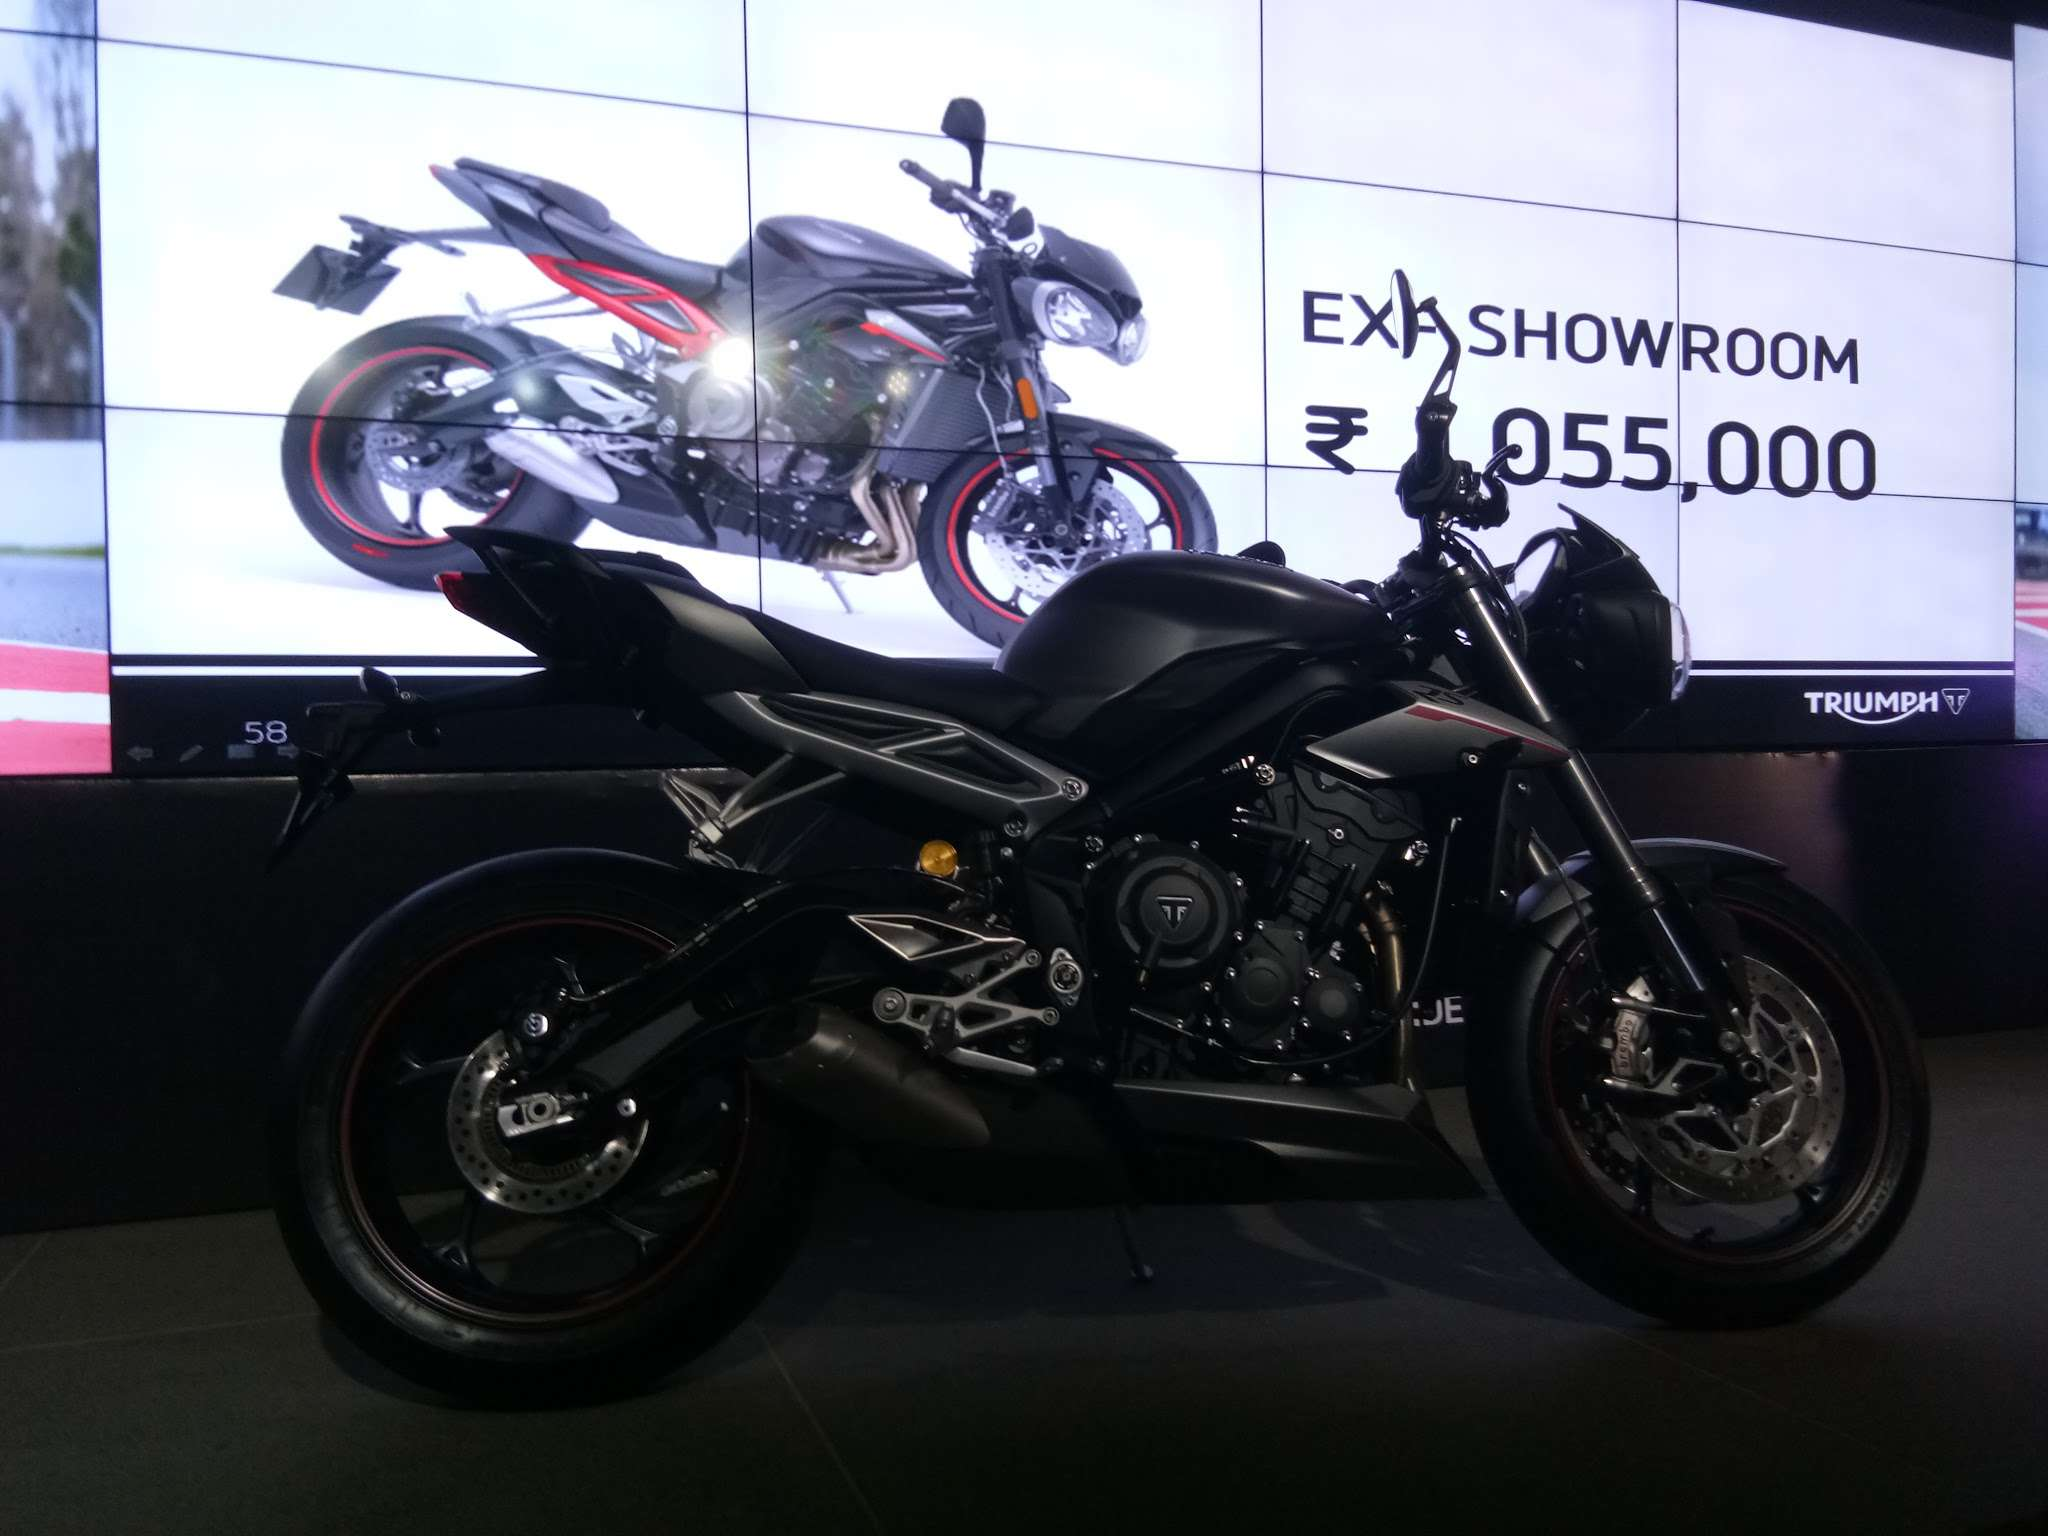 Triumph Street Triple Rs Triumph Motorcycles Launches New Street